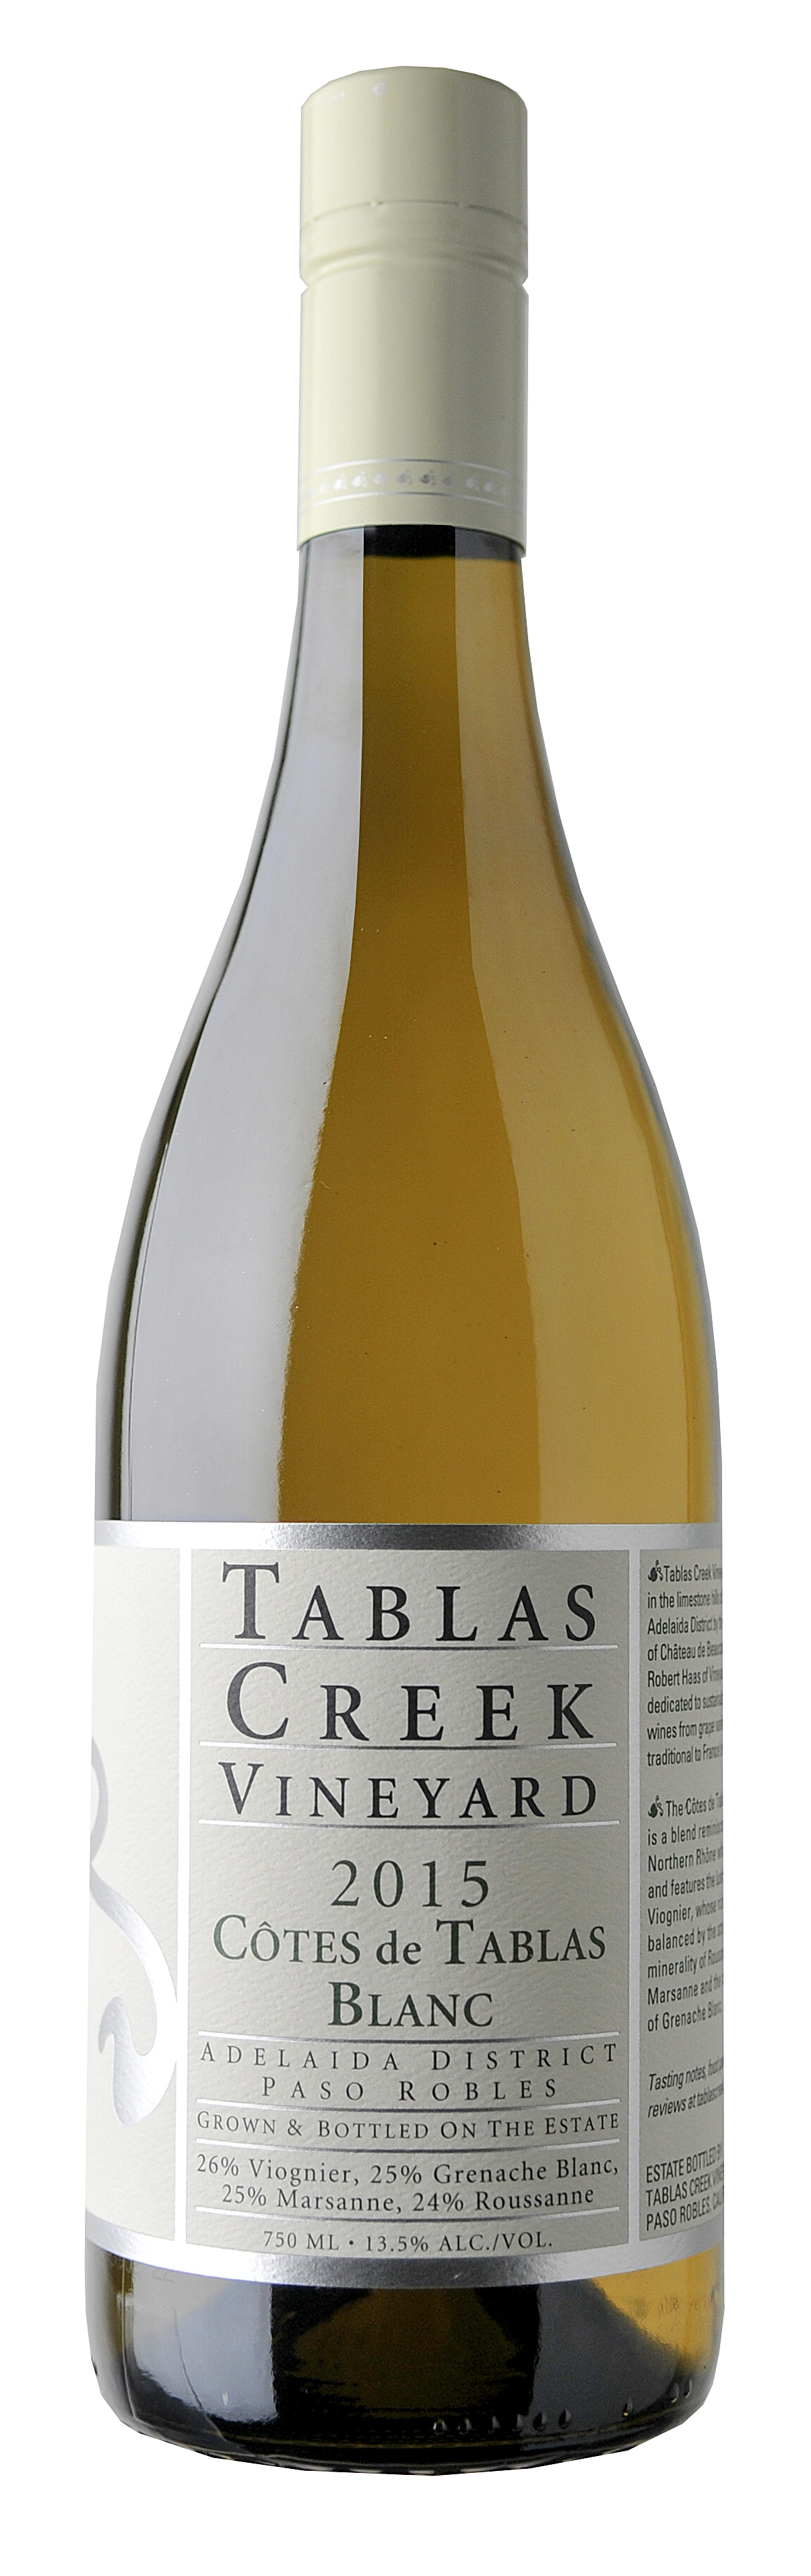 Tablas Creek Côtes de Tablas Blanc 2015 Bottle.jpg